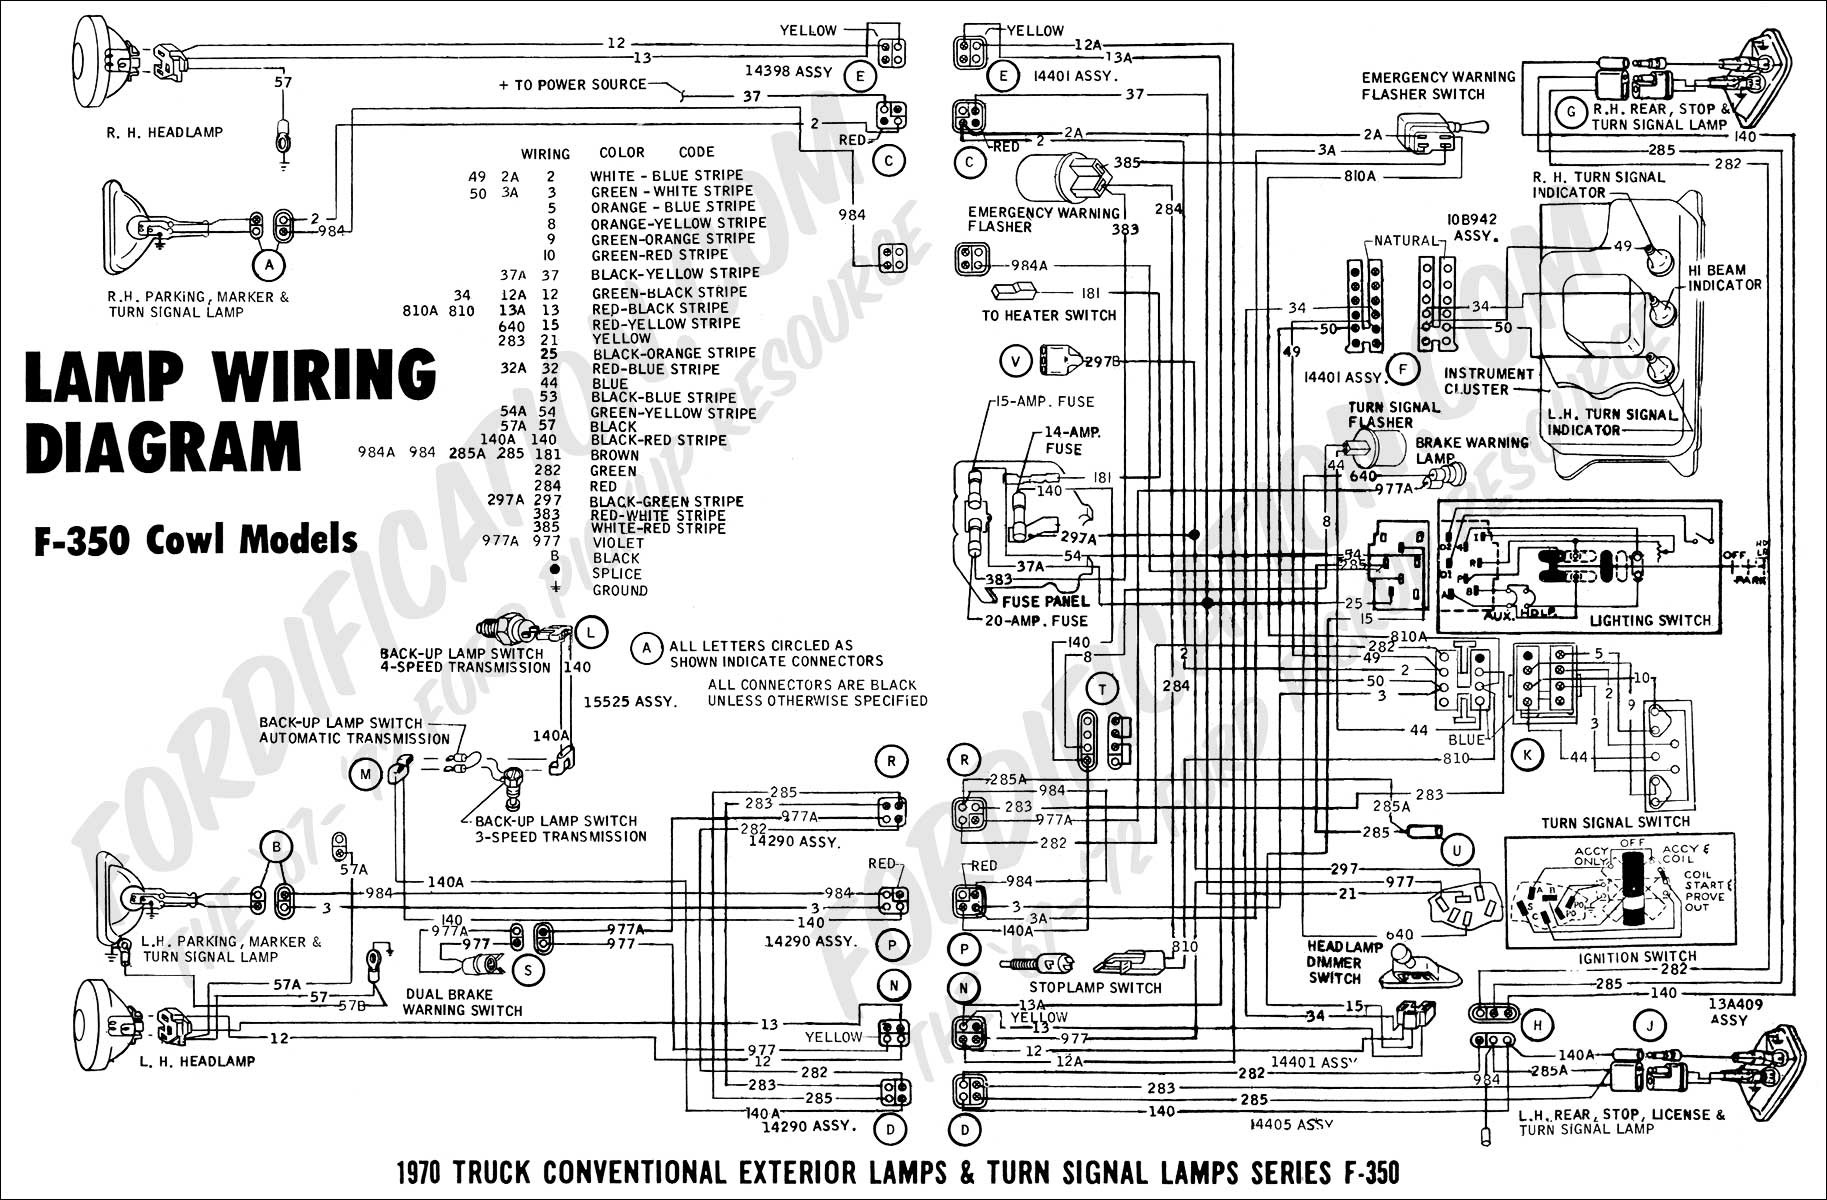 2001 Ford Explorer Sport Engine Diagram Bucket 2002 F350 Superduty Wiring F750 Headlamp To Her With 99 F